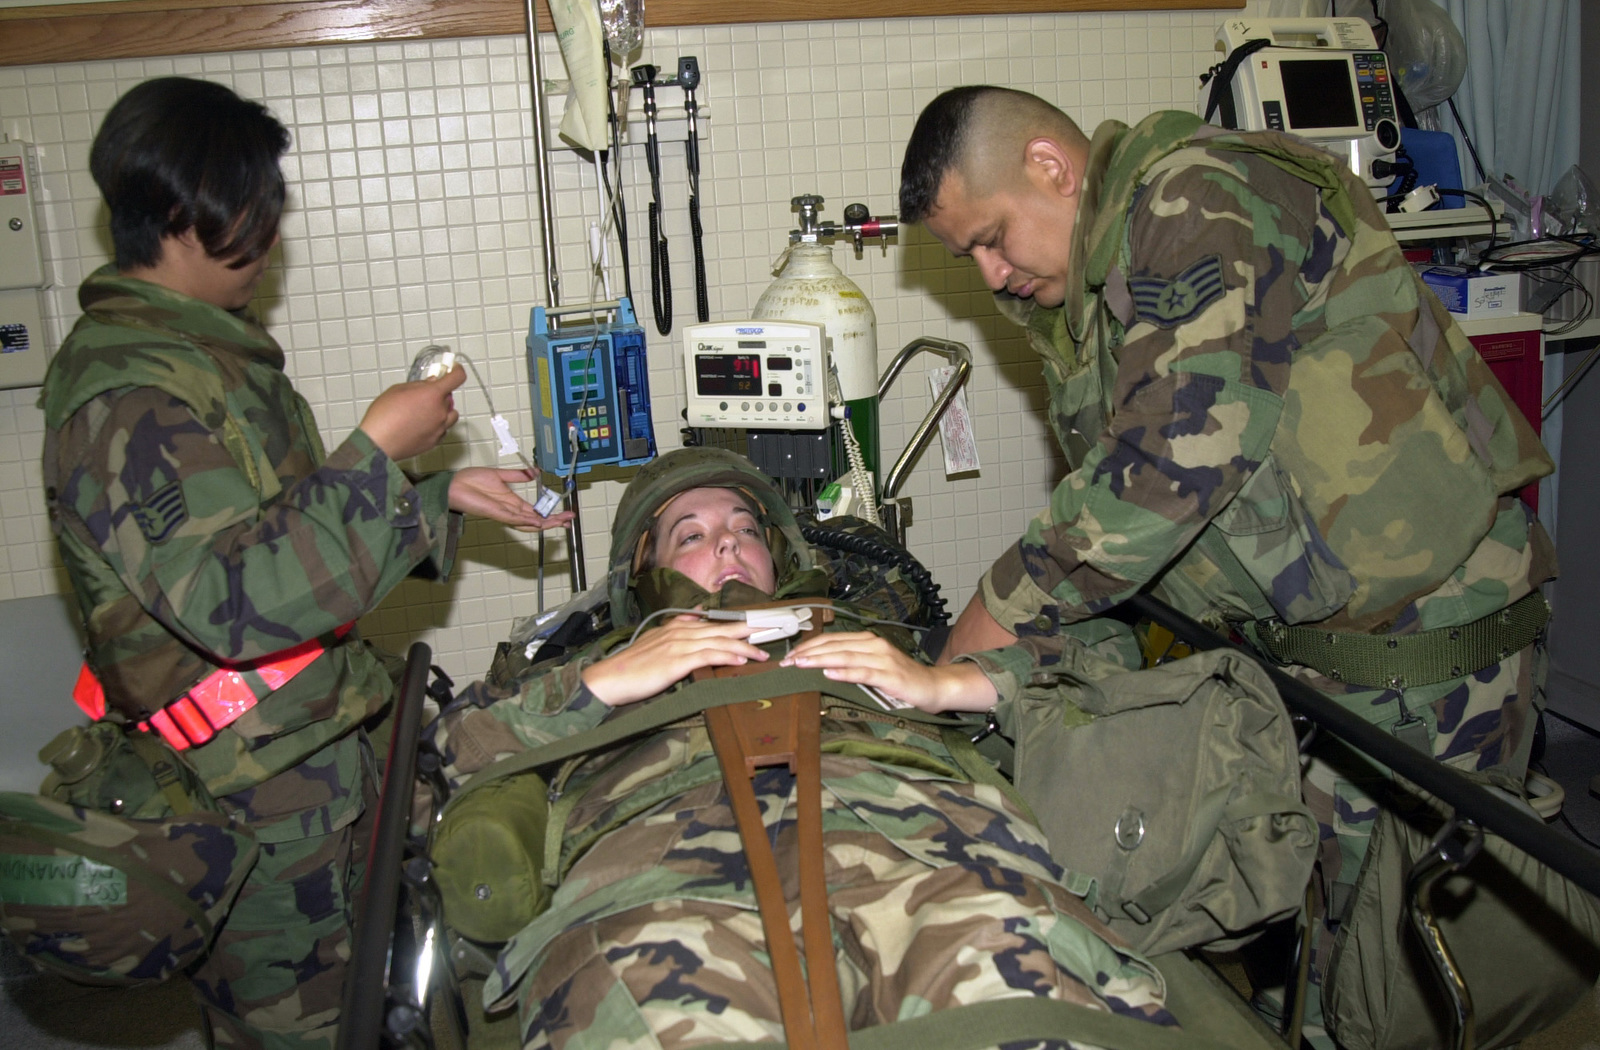 "US Air Force (USAF) STAFF Sergeant (SSGT) Raul Romero (right) and USAF SSGT Konny Dolomandin, both members of the 8th Medical Support Squadron (MSS), treat USAF SENIOR AIRMAN (SRA) Jillian Sasser of the 8th Services Squadron (SS) for""injuries""during Exercise Beverly High 04-04 at Kunsan Air Base (AB), Korea (ROK)"